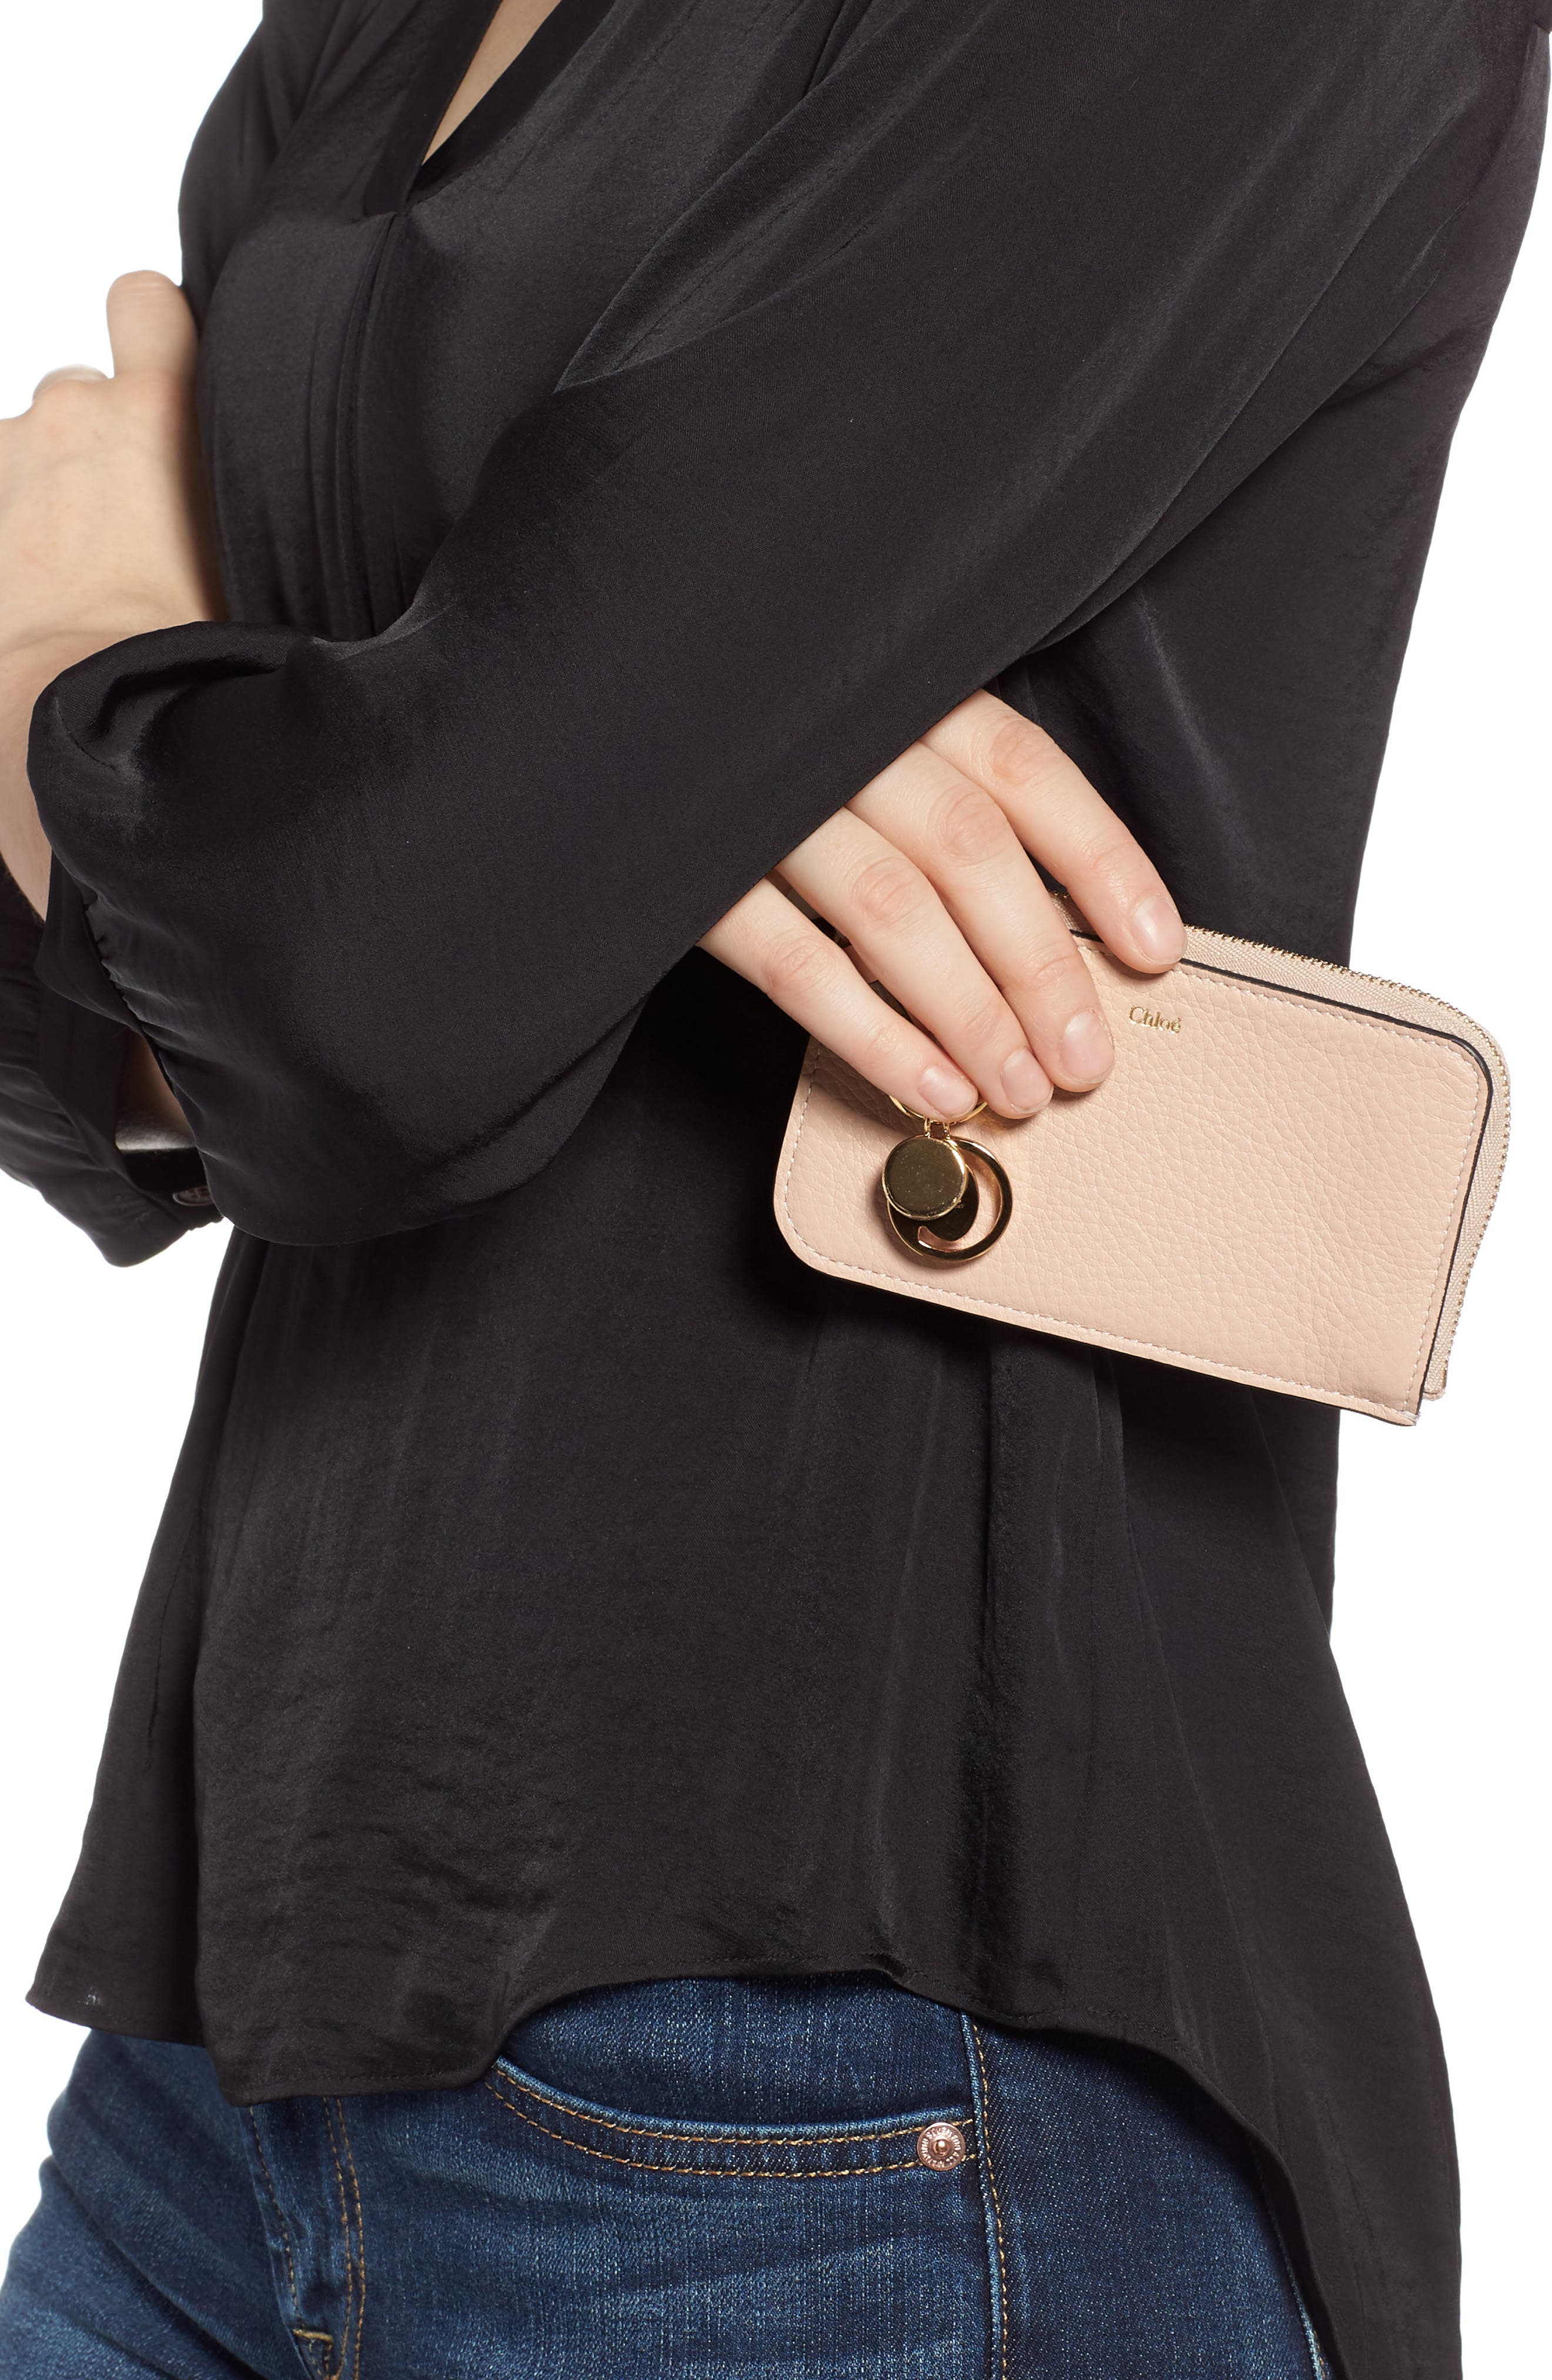 CHLOÉ, Alphabet Leather Card Holder, Alternate thumbnail 3, color, BLUSH NUDE